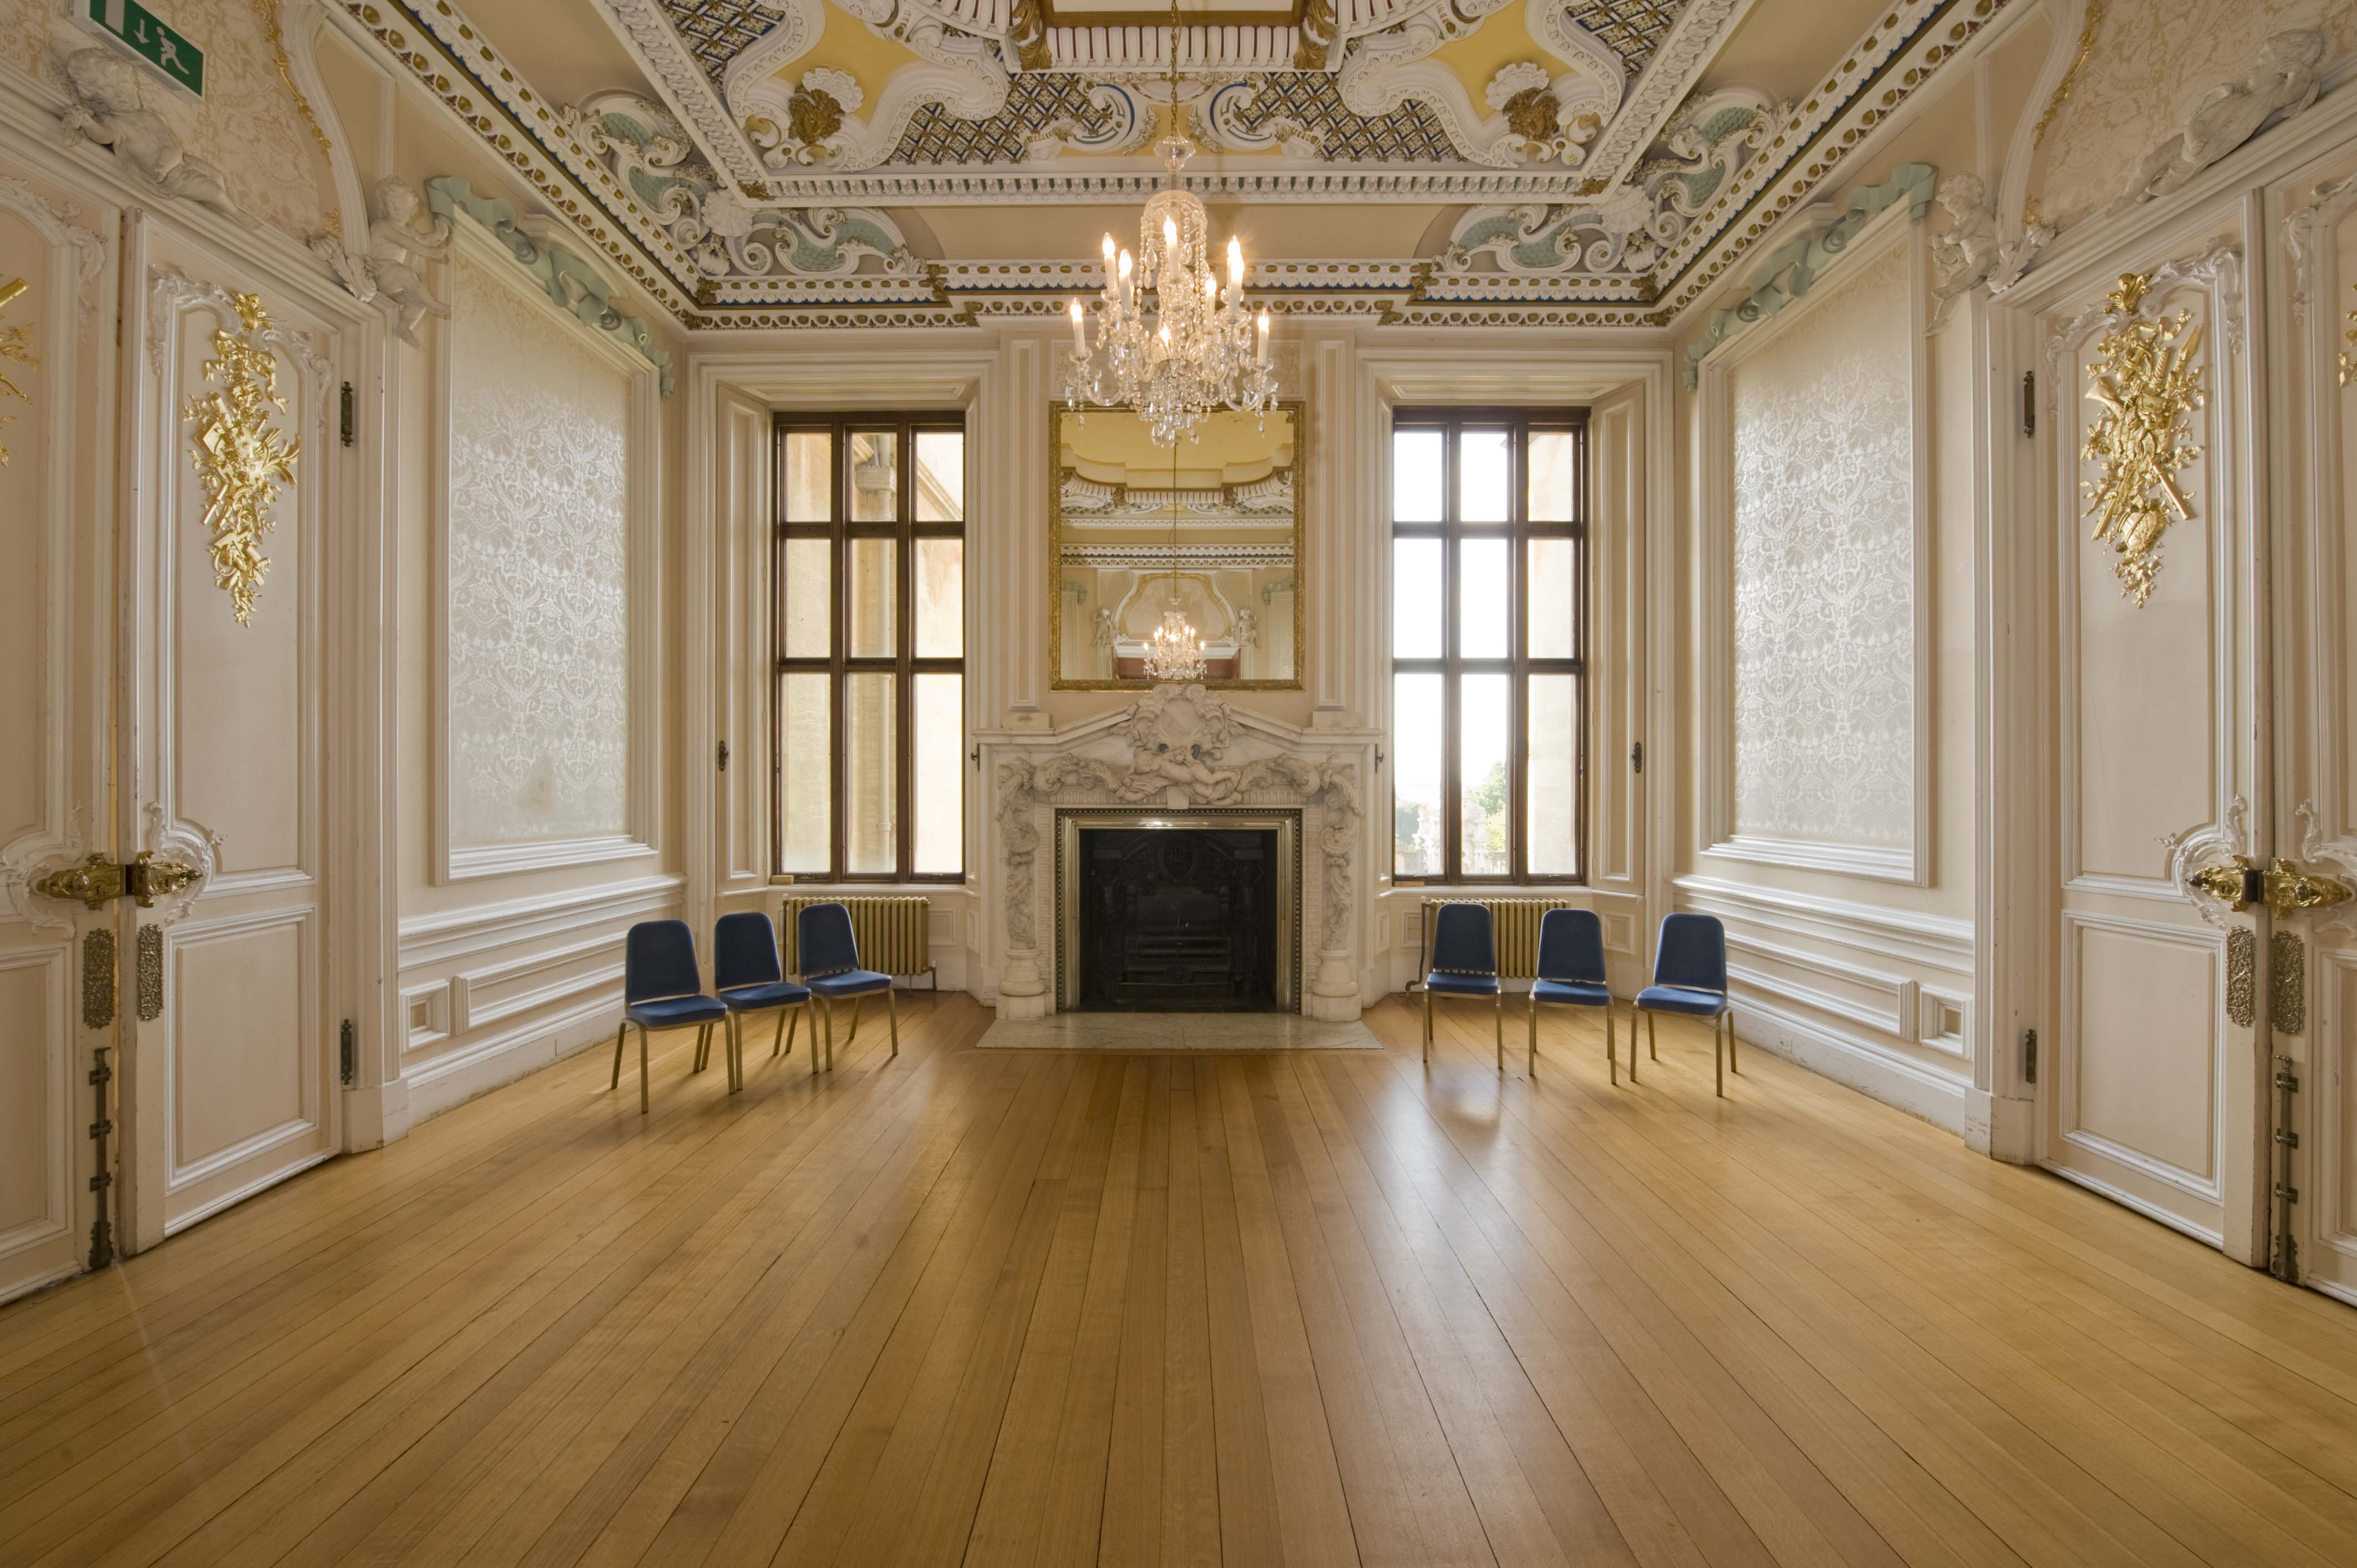 Ante Room Harlaxton Manor Archives